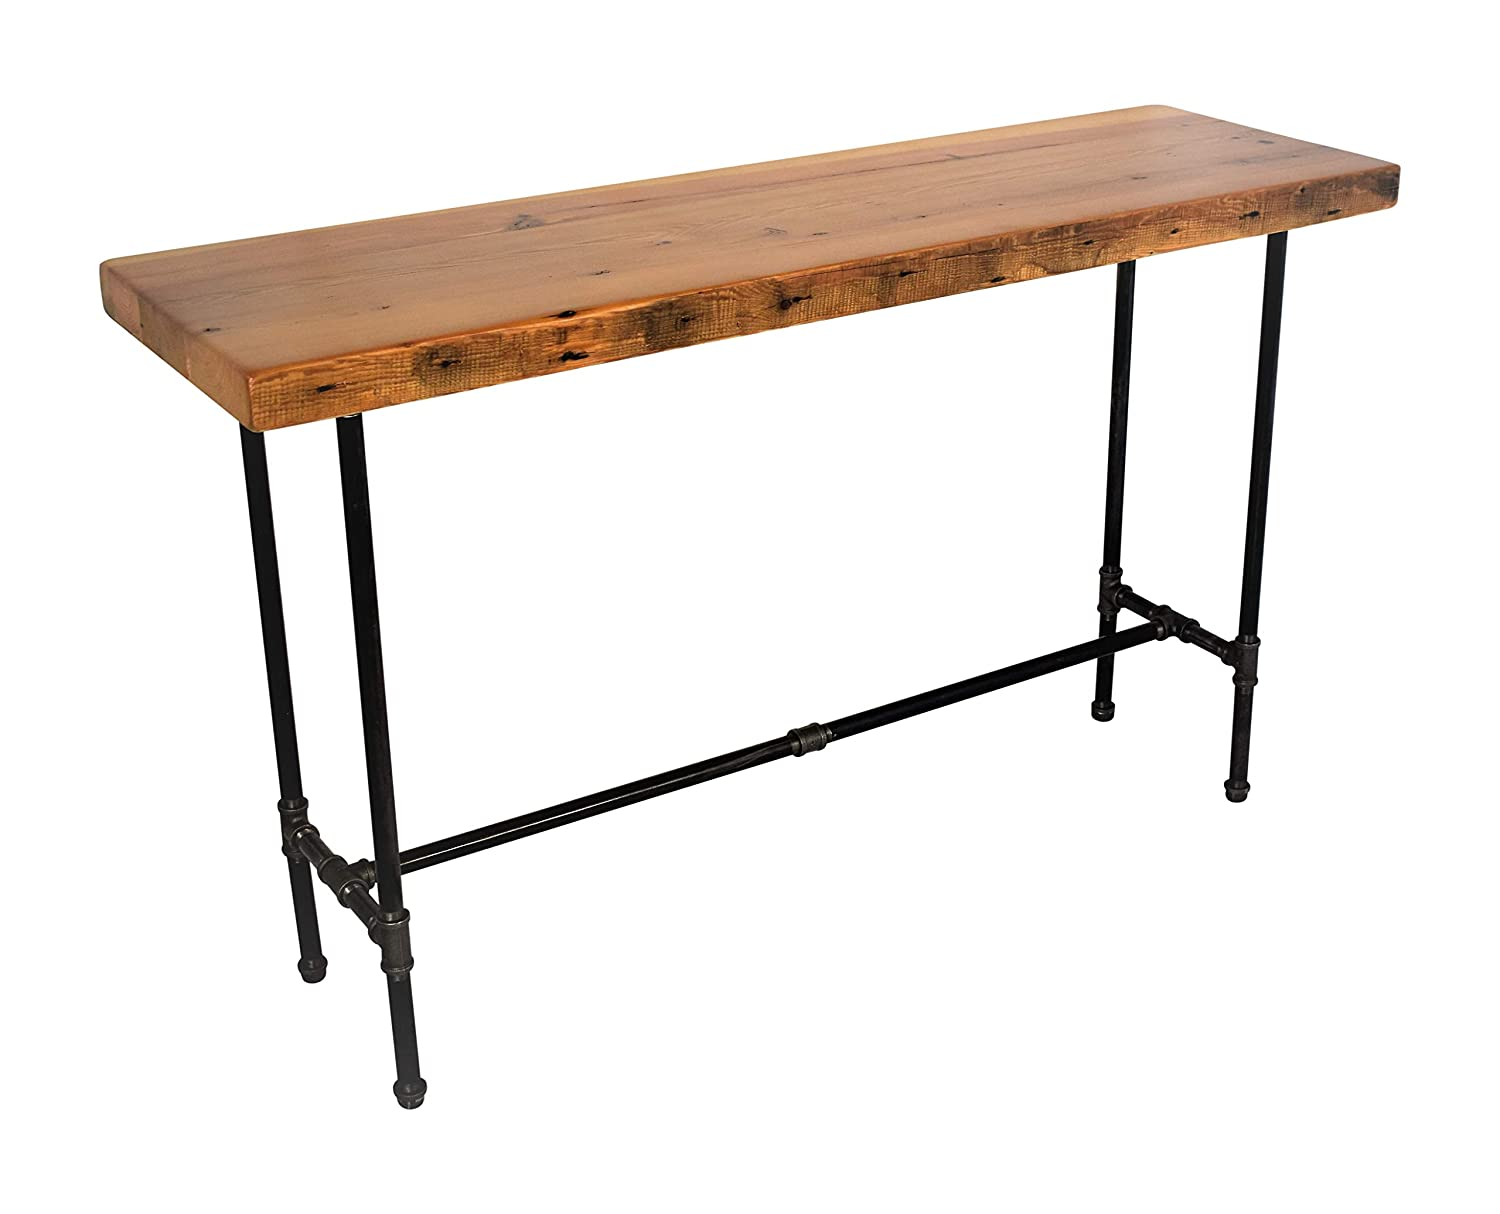 Amazon.com: Sofa Table,Entry Table, Hallway Table, Nook Table,42 ...